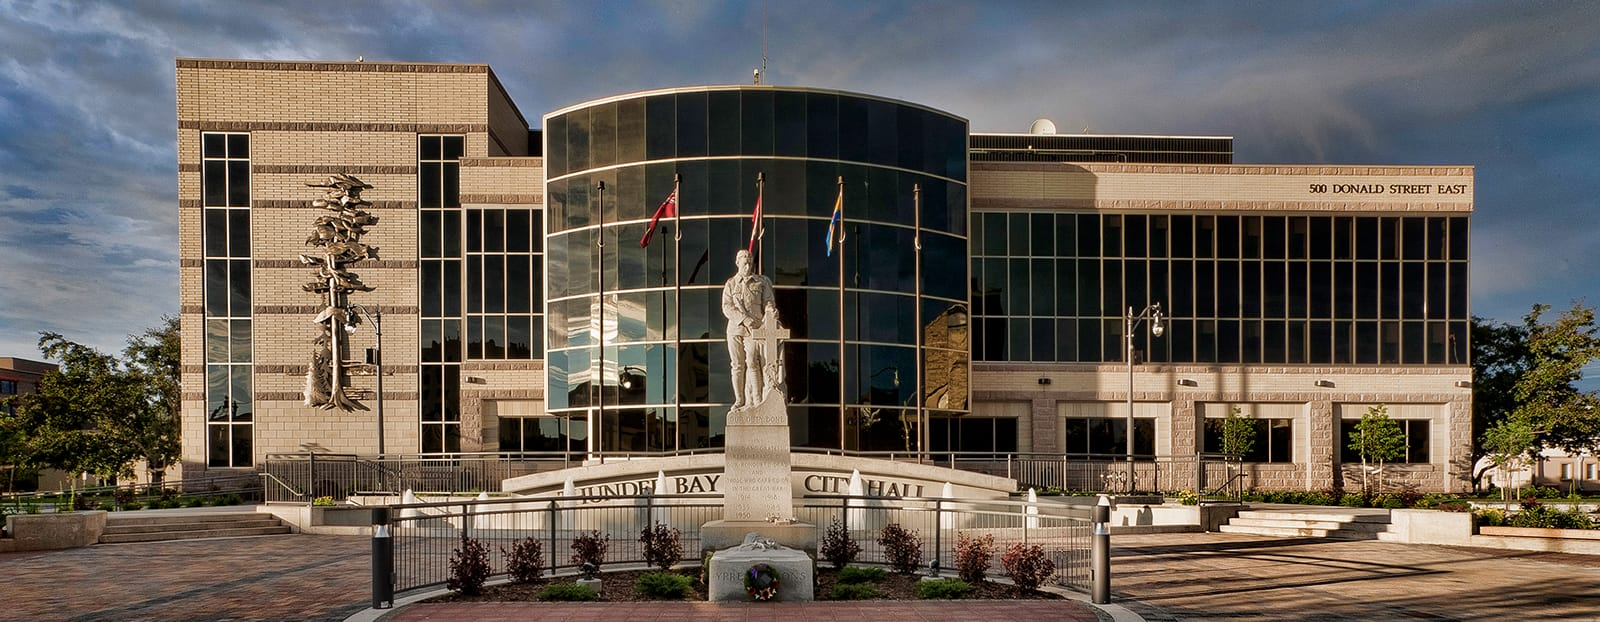 Thunder Bay Canadian Patent Filing Lawyers and Trademark Registration